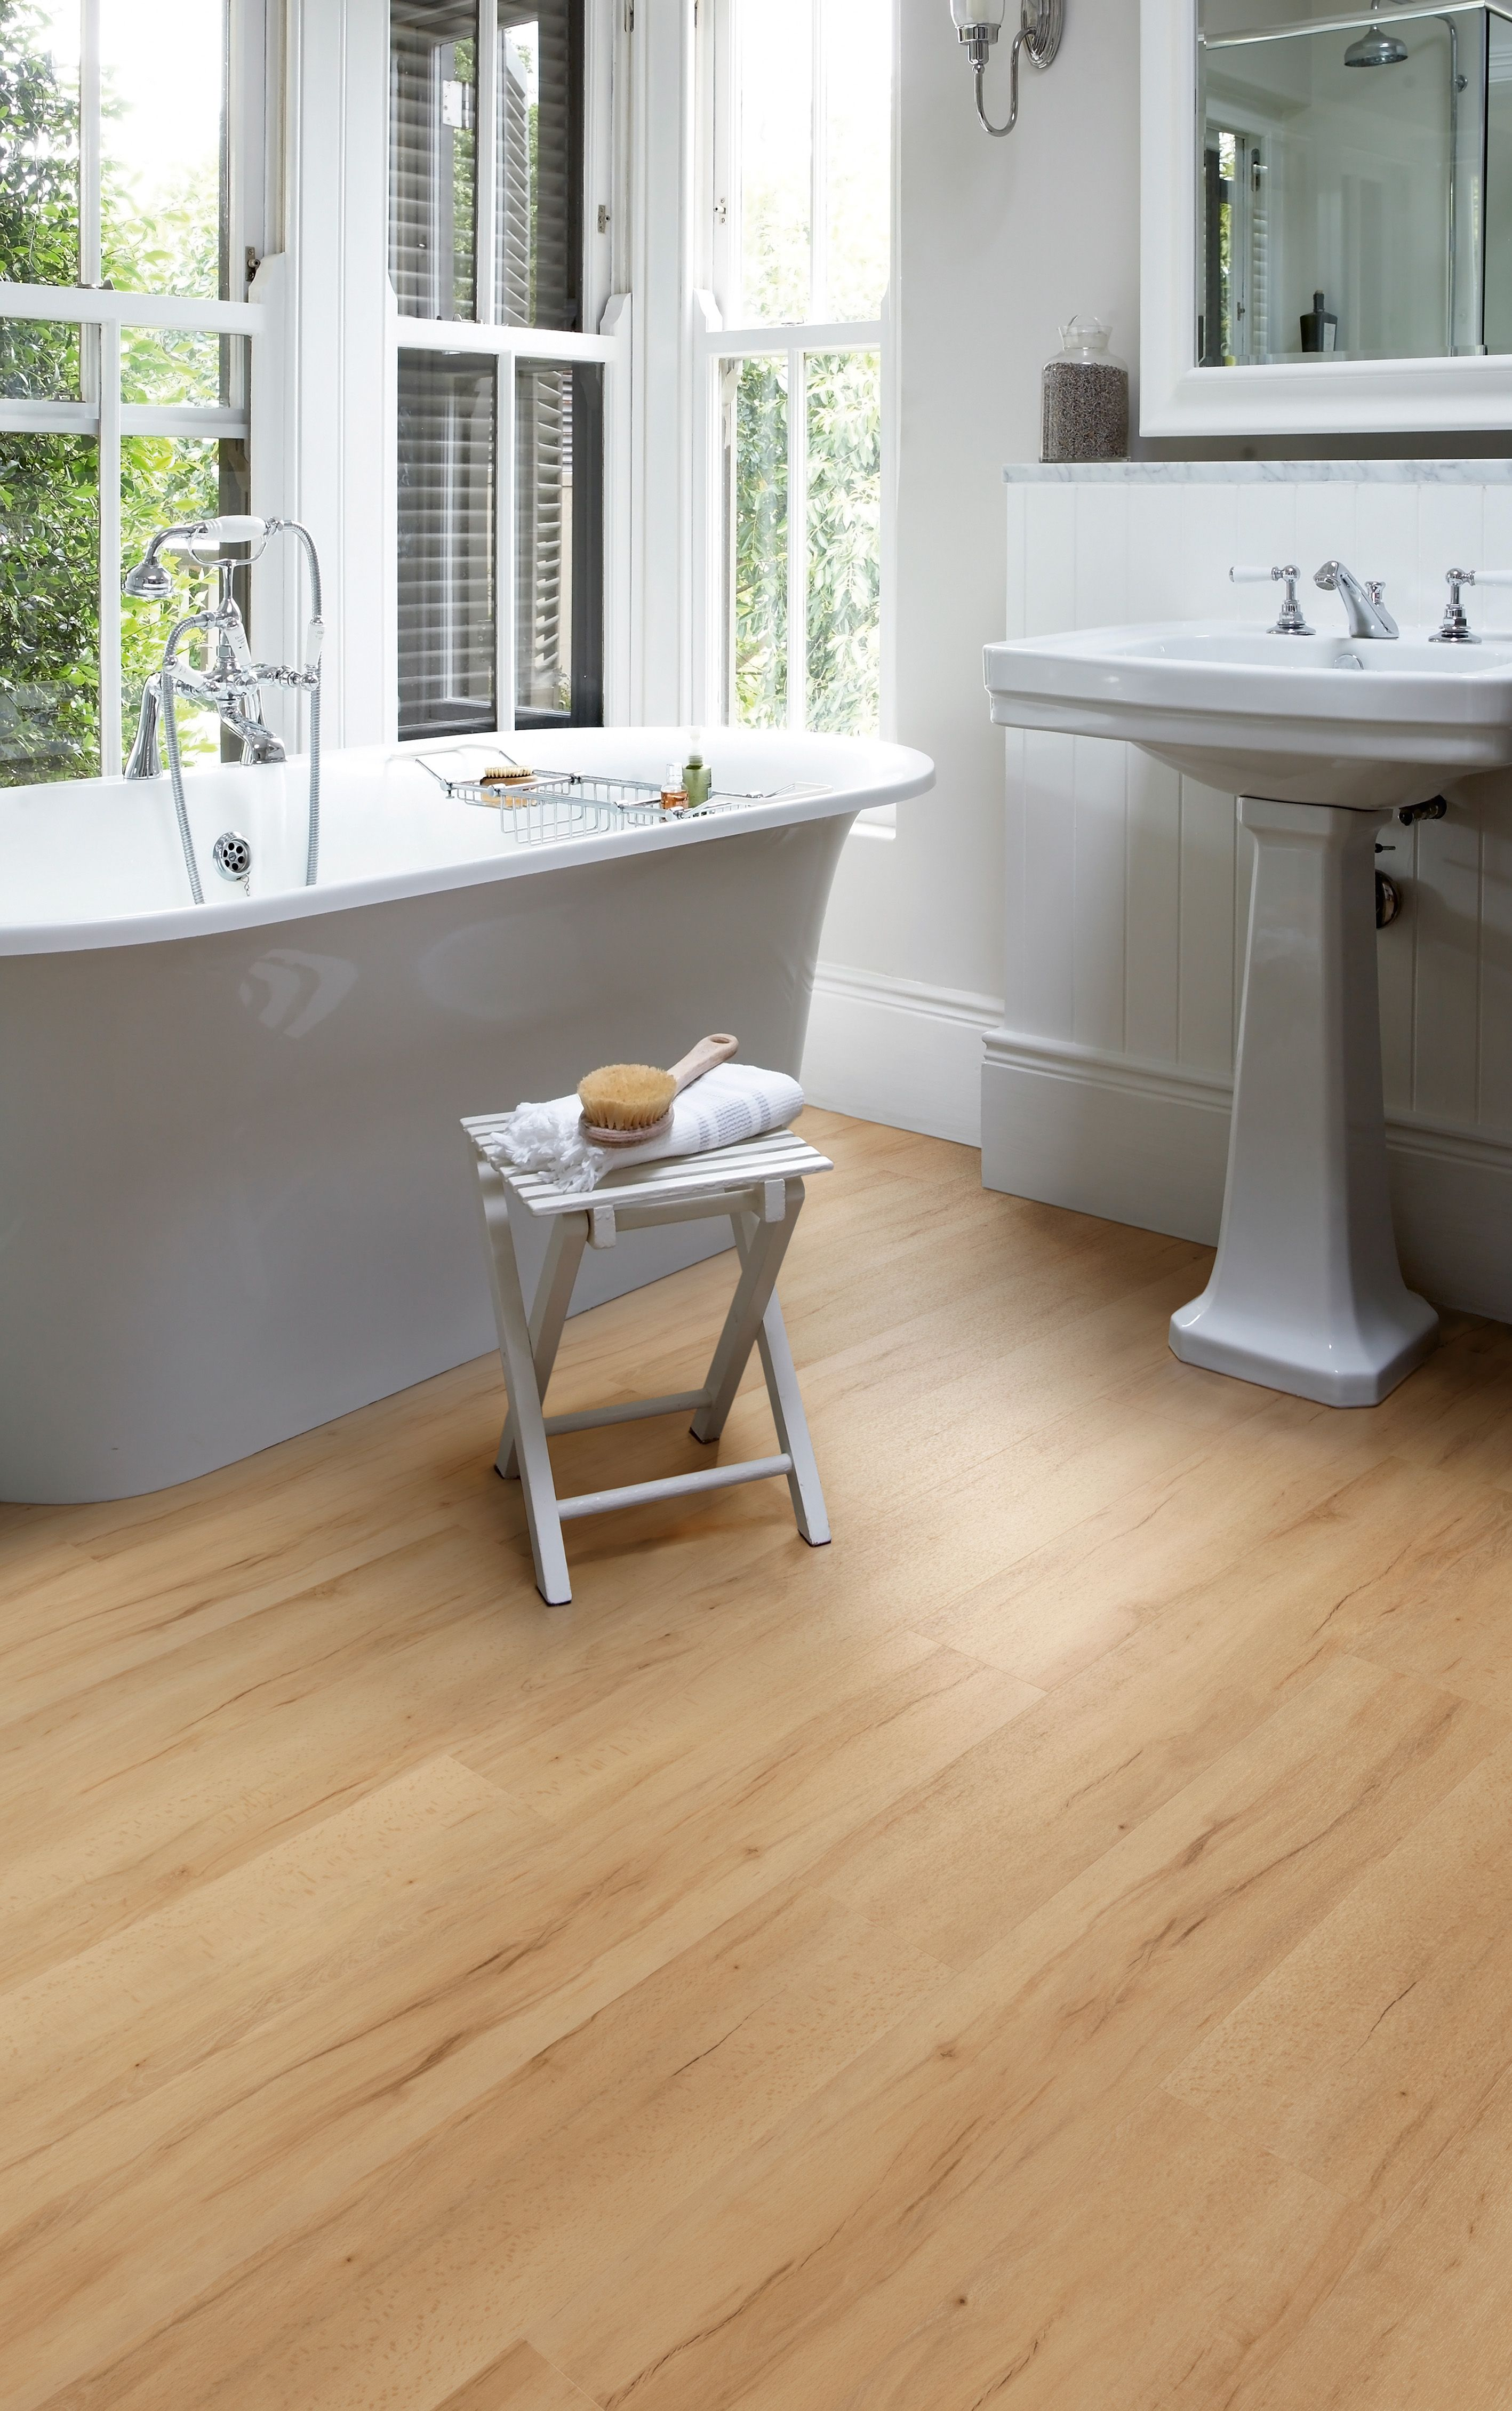 Summer maple looks fabulous in this warm and inviting bathroom camaro loc pu a collection of high design luxury interlocking vinyl flooring tiles ideal for all home interiors doublecrazyfo Choice Image